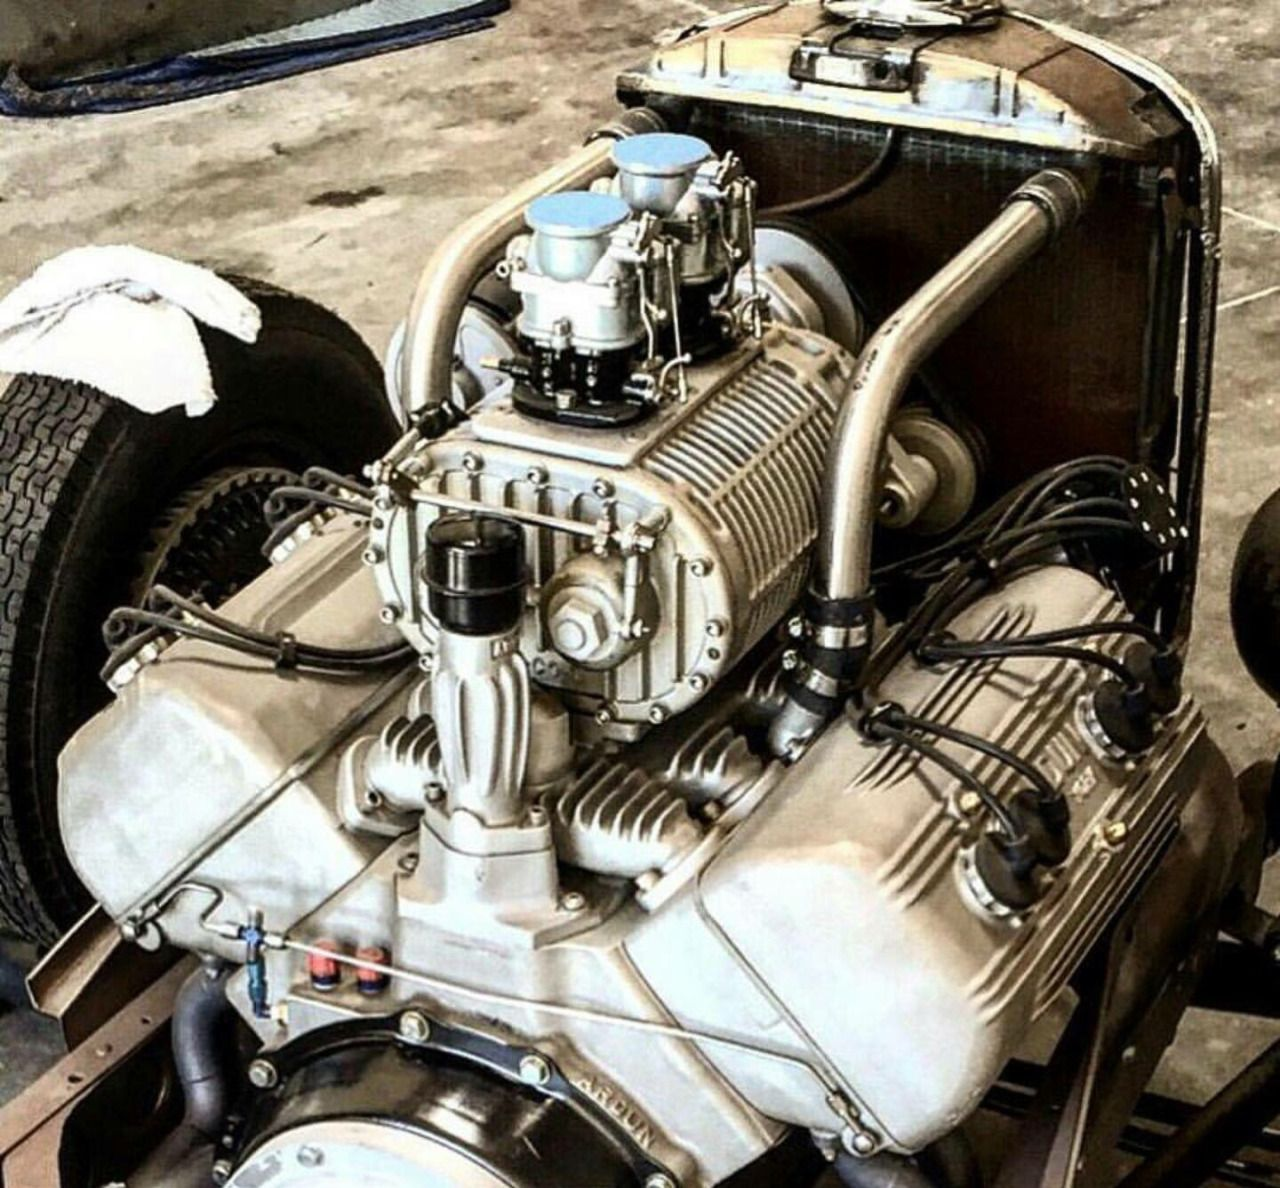 Find this pin and more on flathead engine